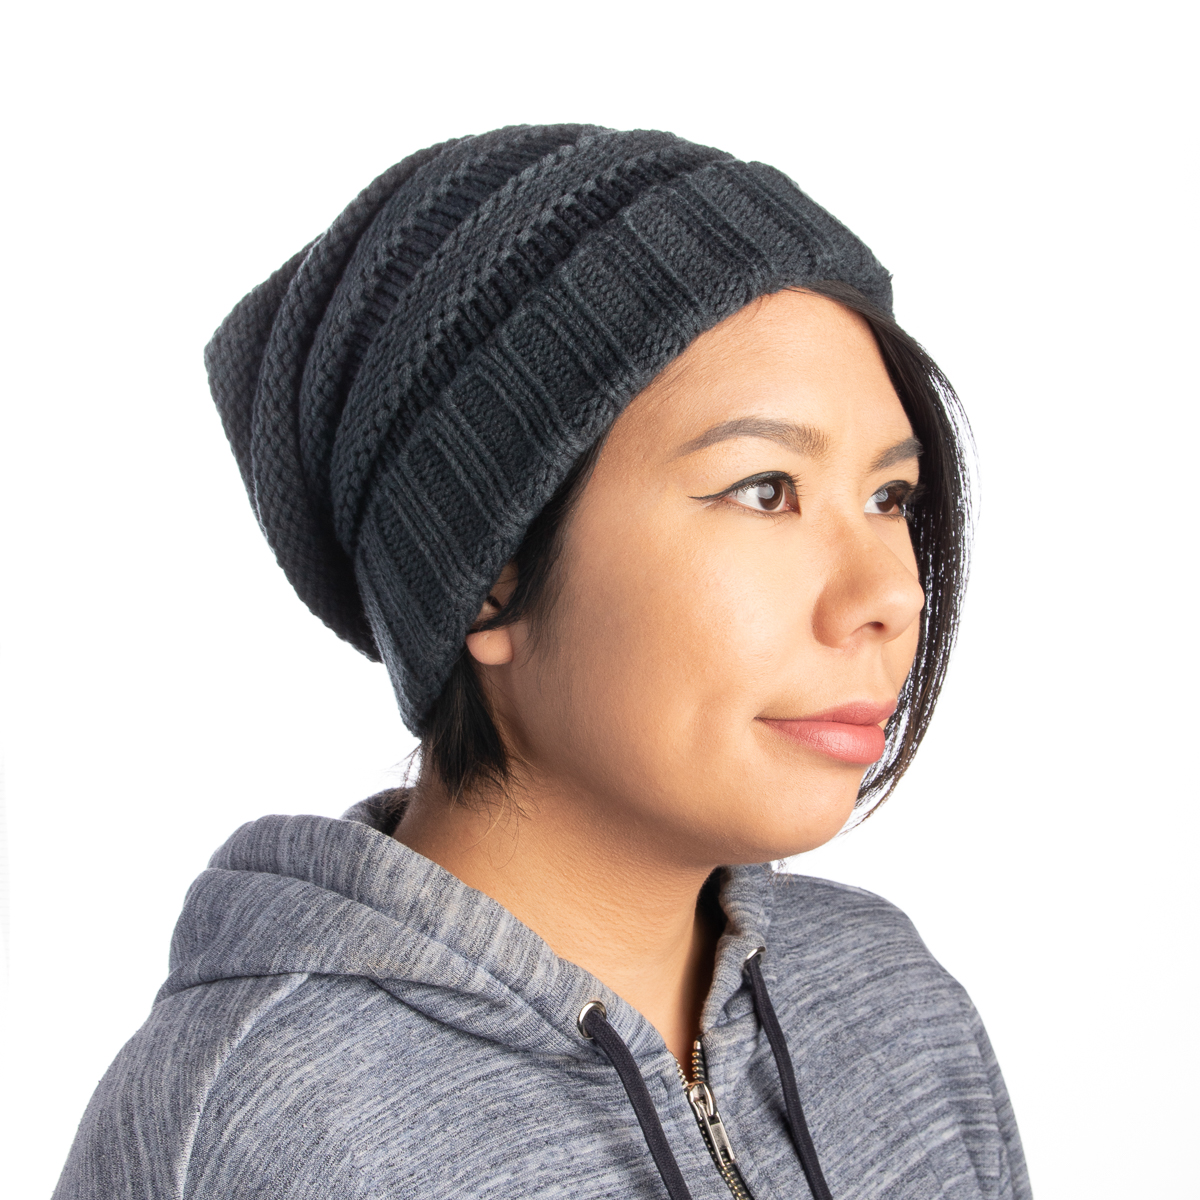 Womens-Slouchy-Ribbed-Knit-Chunky-Beanie-Winter-Hat-Warm-Cute-Lightweight-Chic thumbnail 28